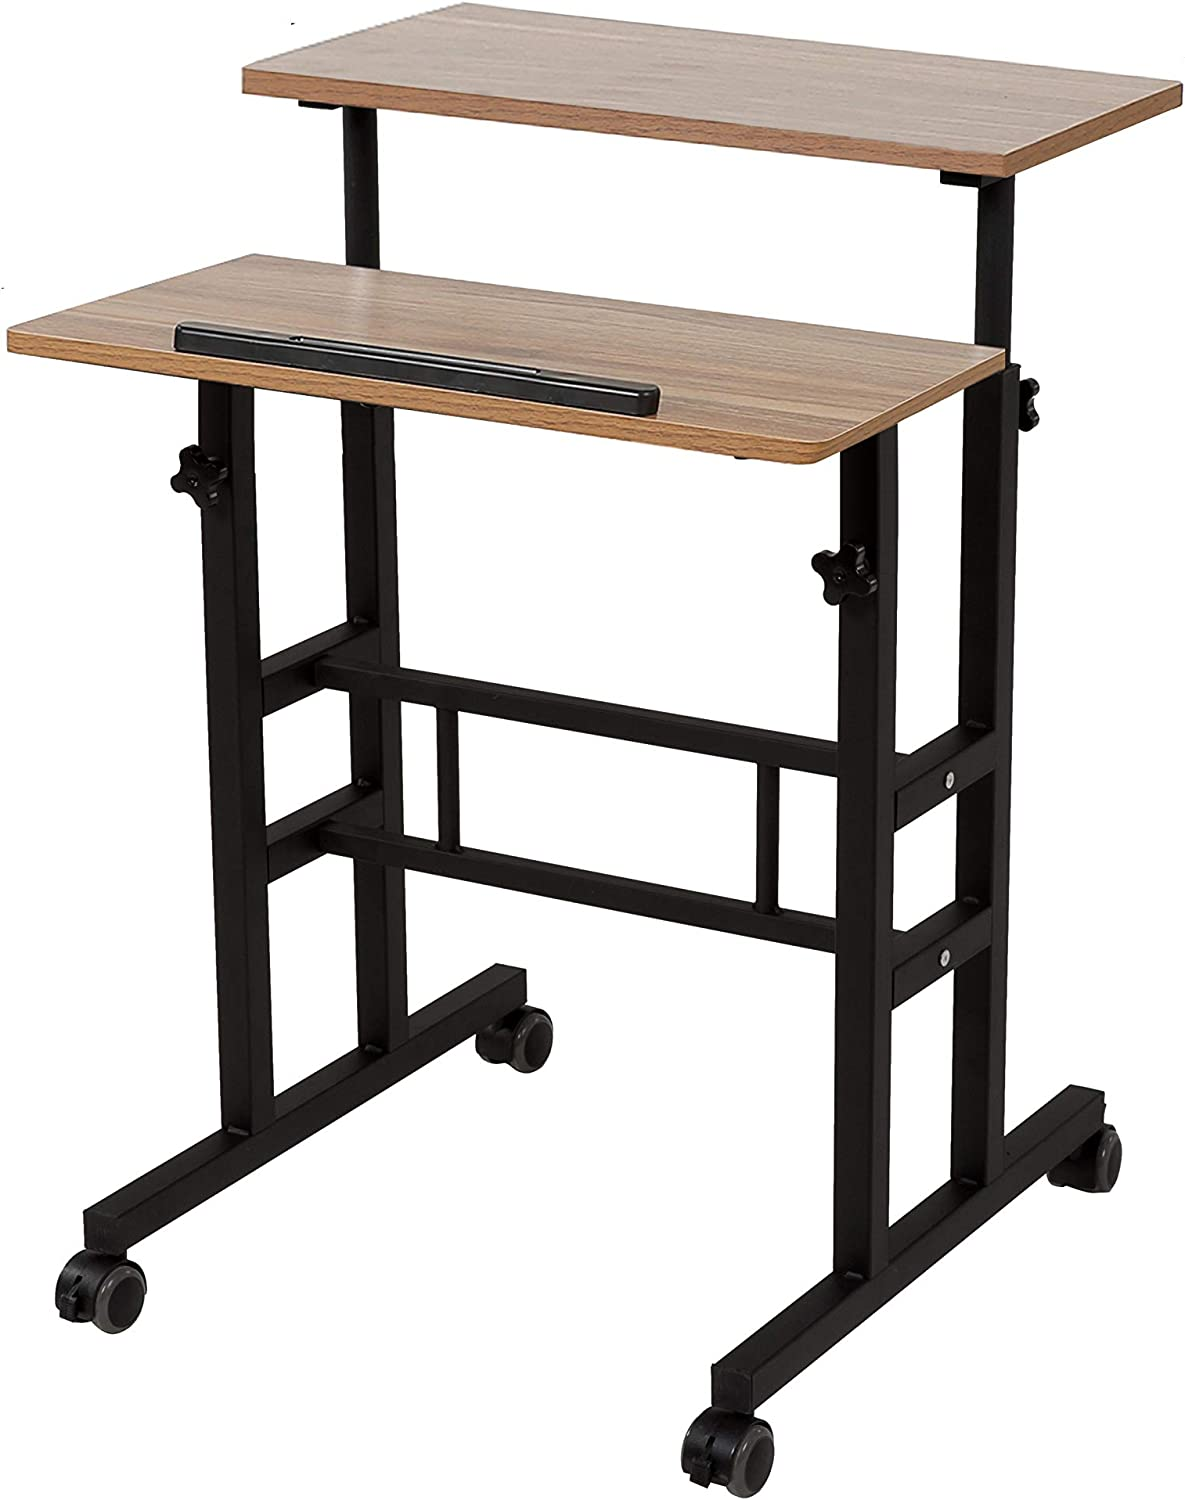 SDADI National uniform free shipping 2 Inches Carpet Wheels Max 59% OFF Stand Mobile Up Standing Desk